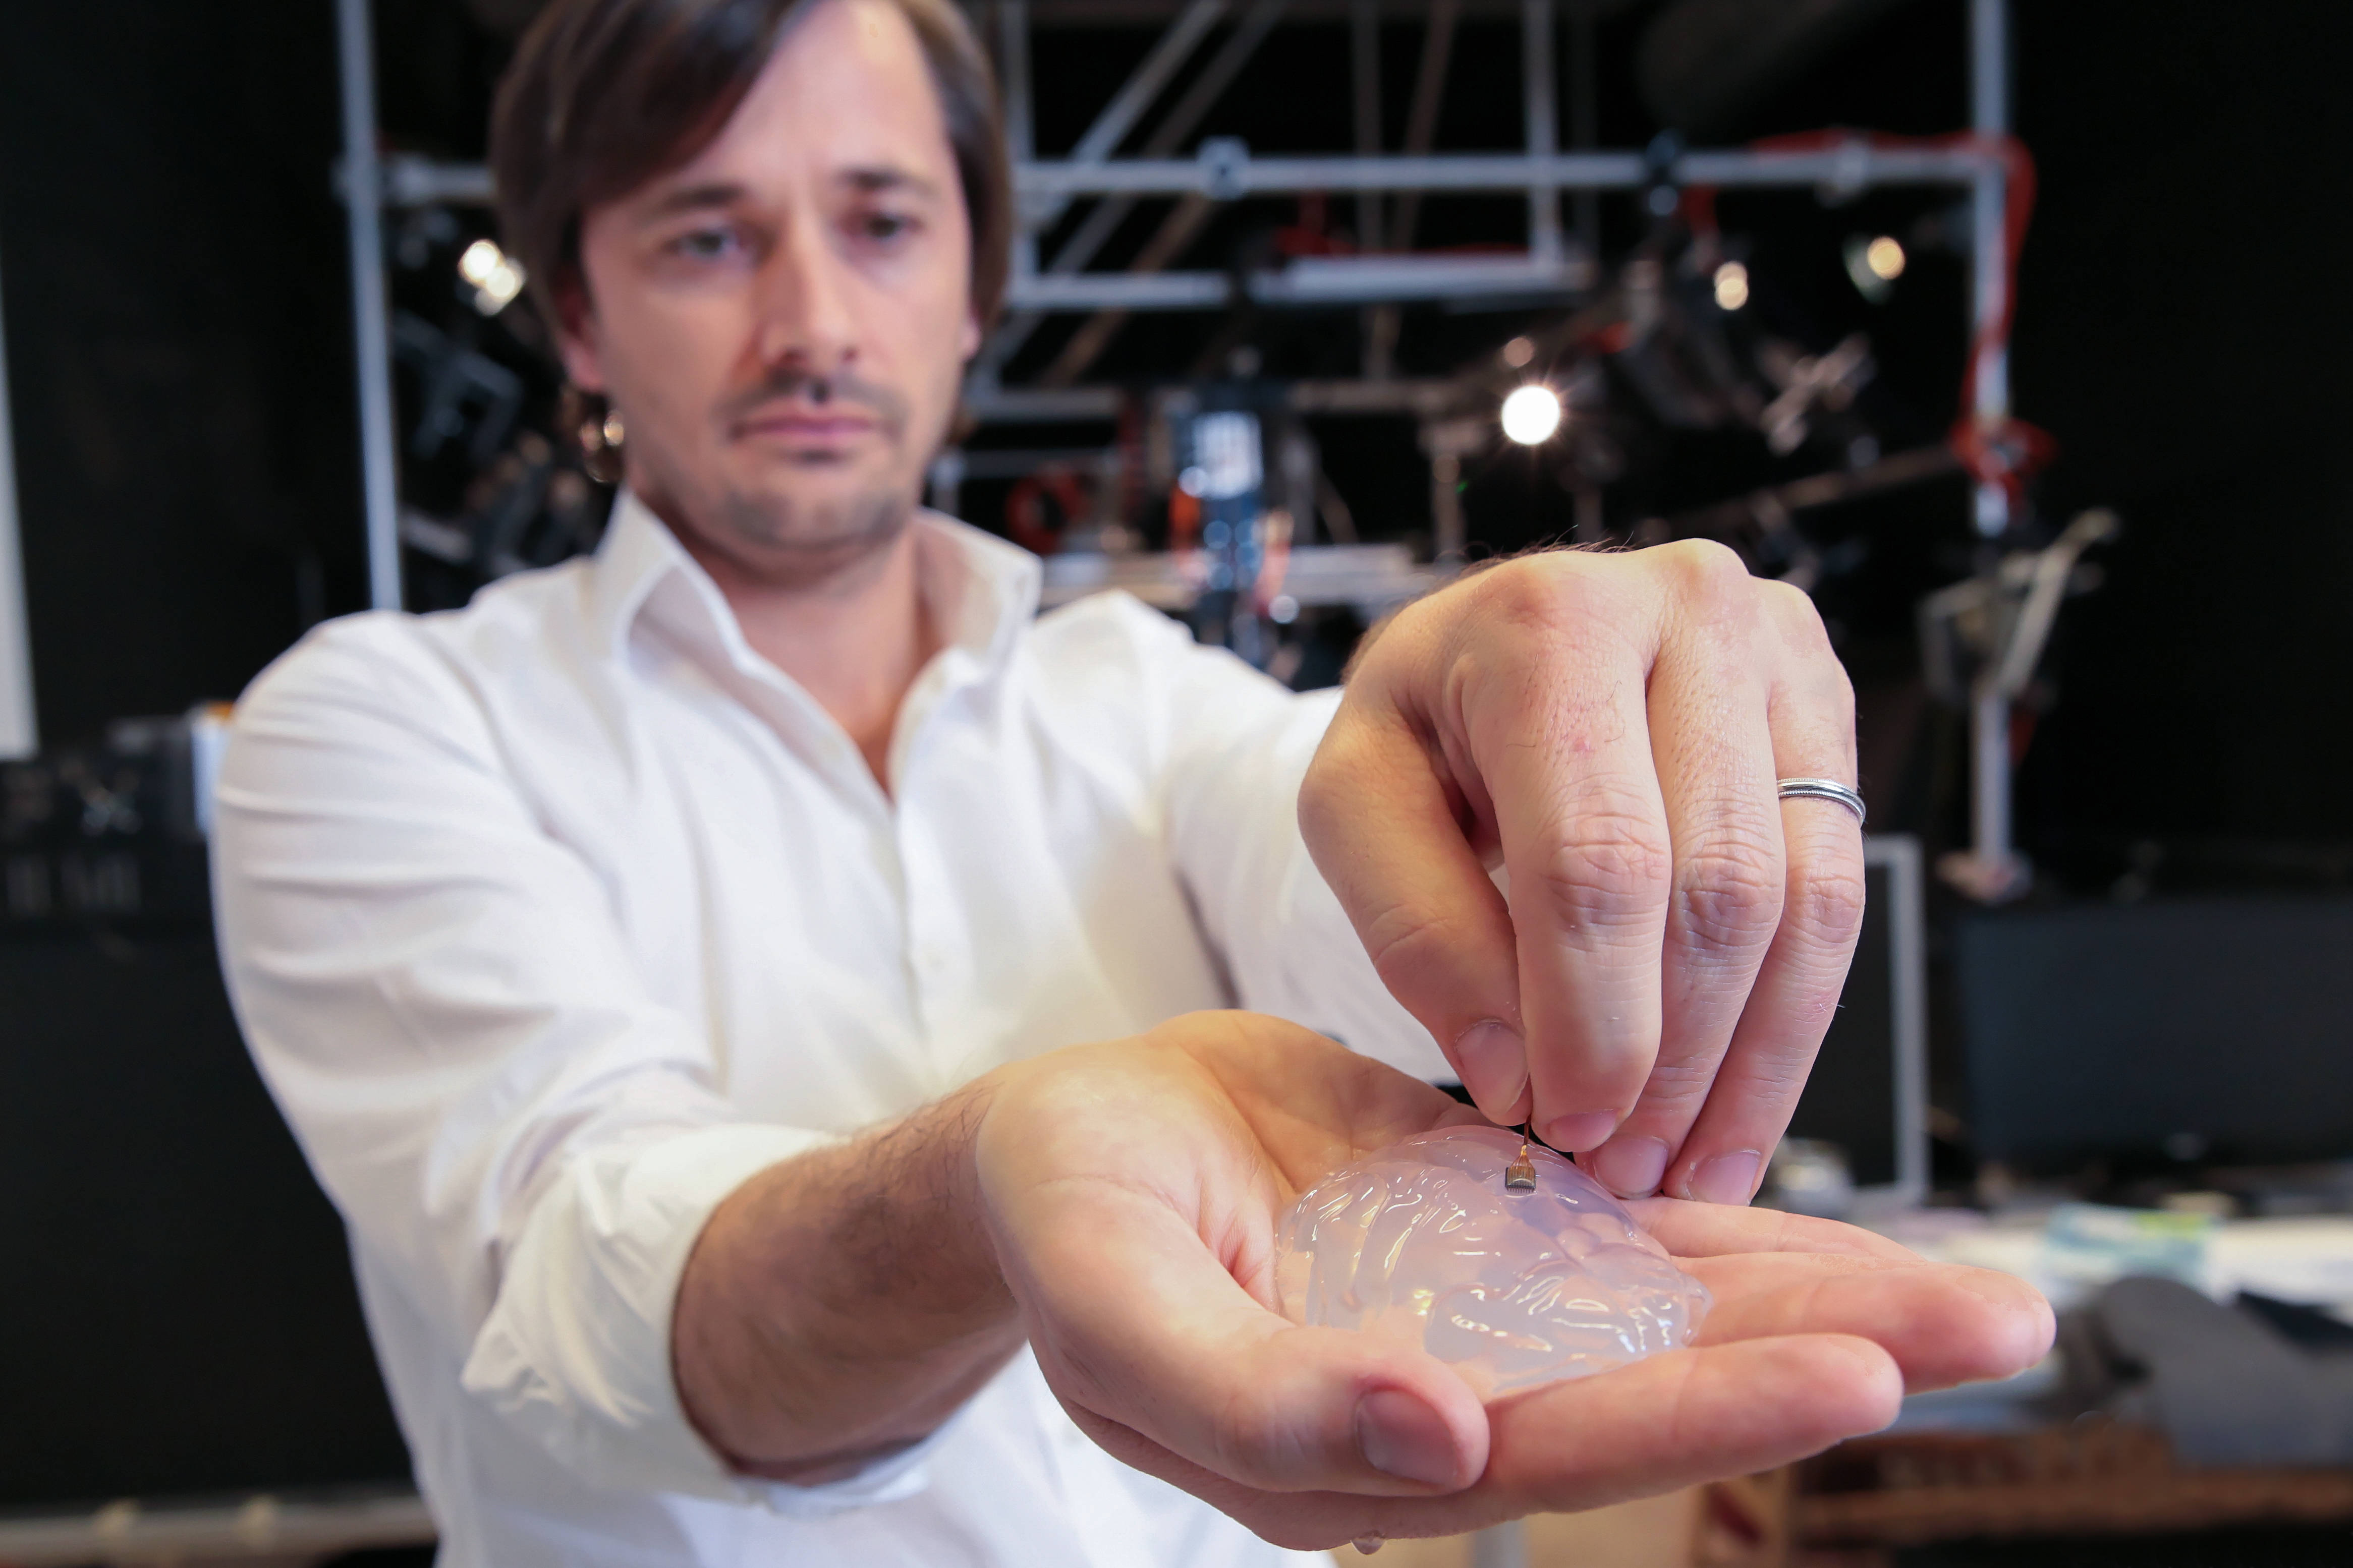 Grégoire Courtine holds a silicon model of a primate's brain and a brain implant. The brain-spine interface uses a microelectrode array like this one to detect spiking activity of the brain's motor cortex